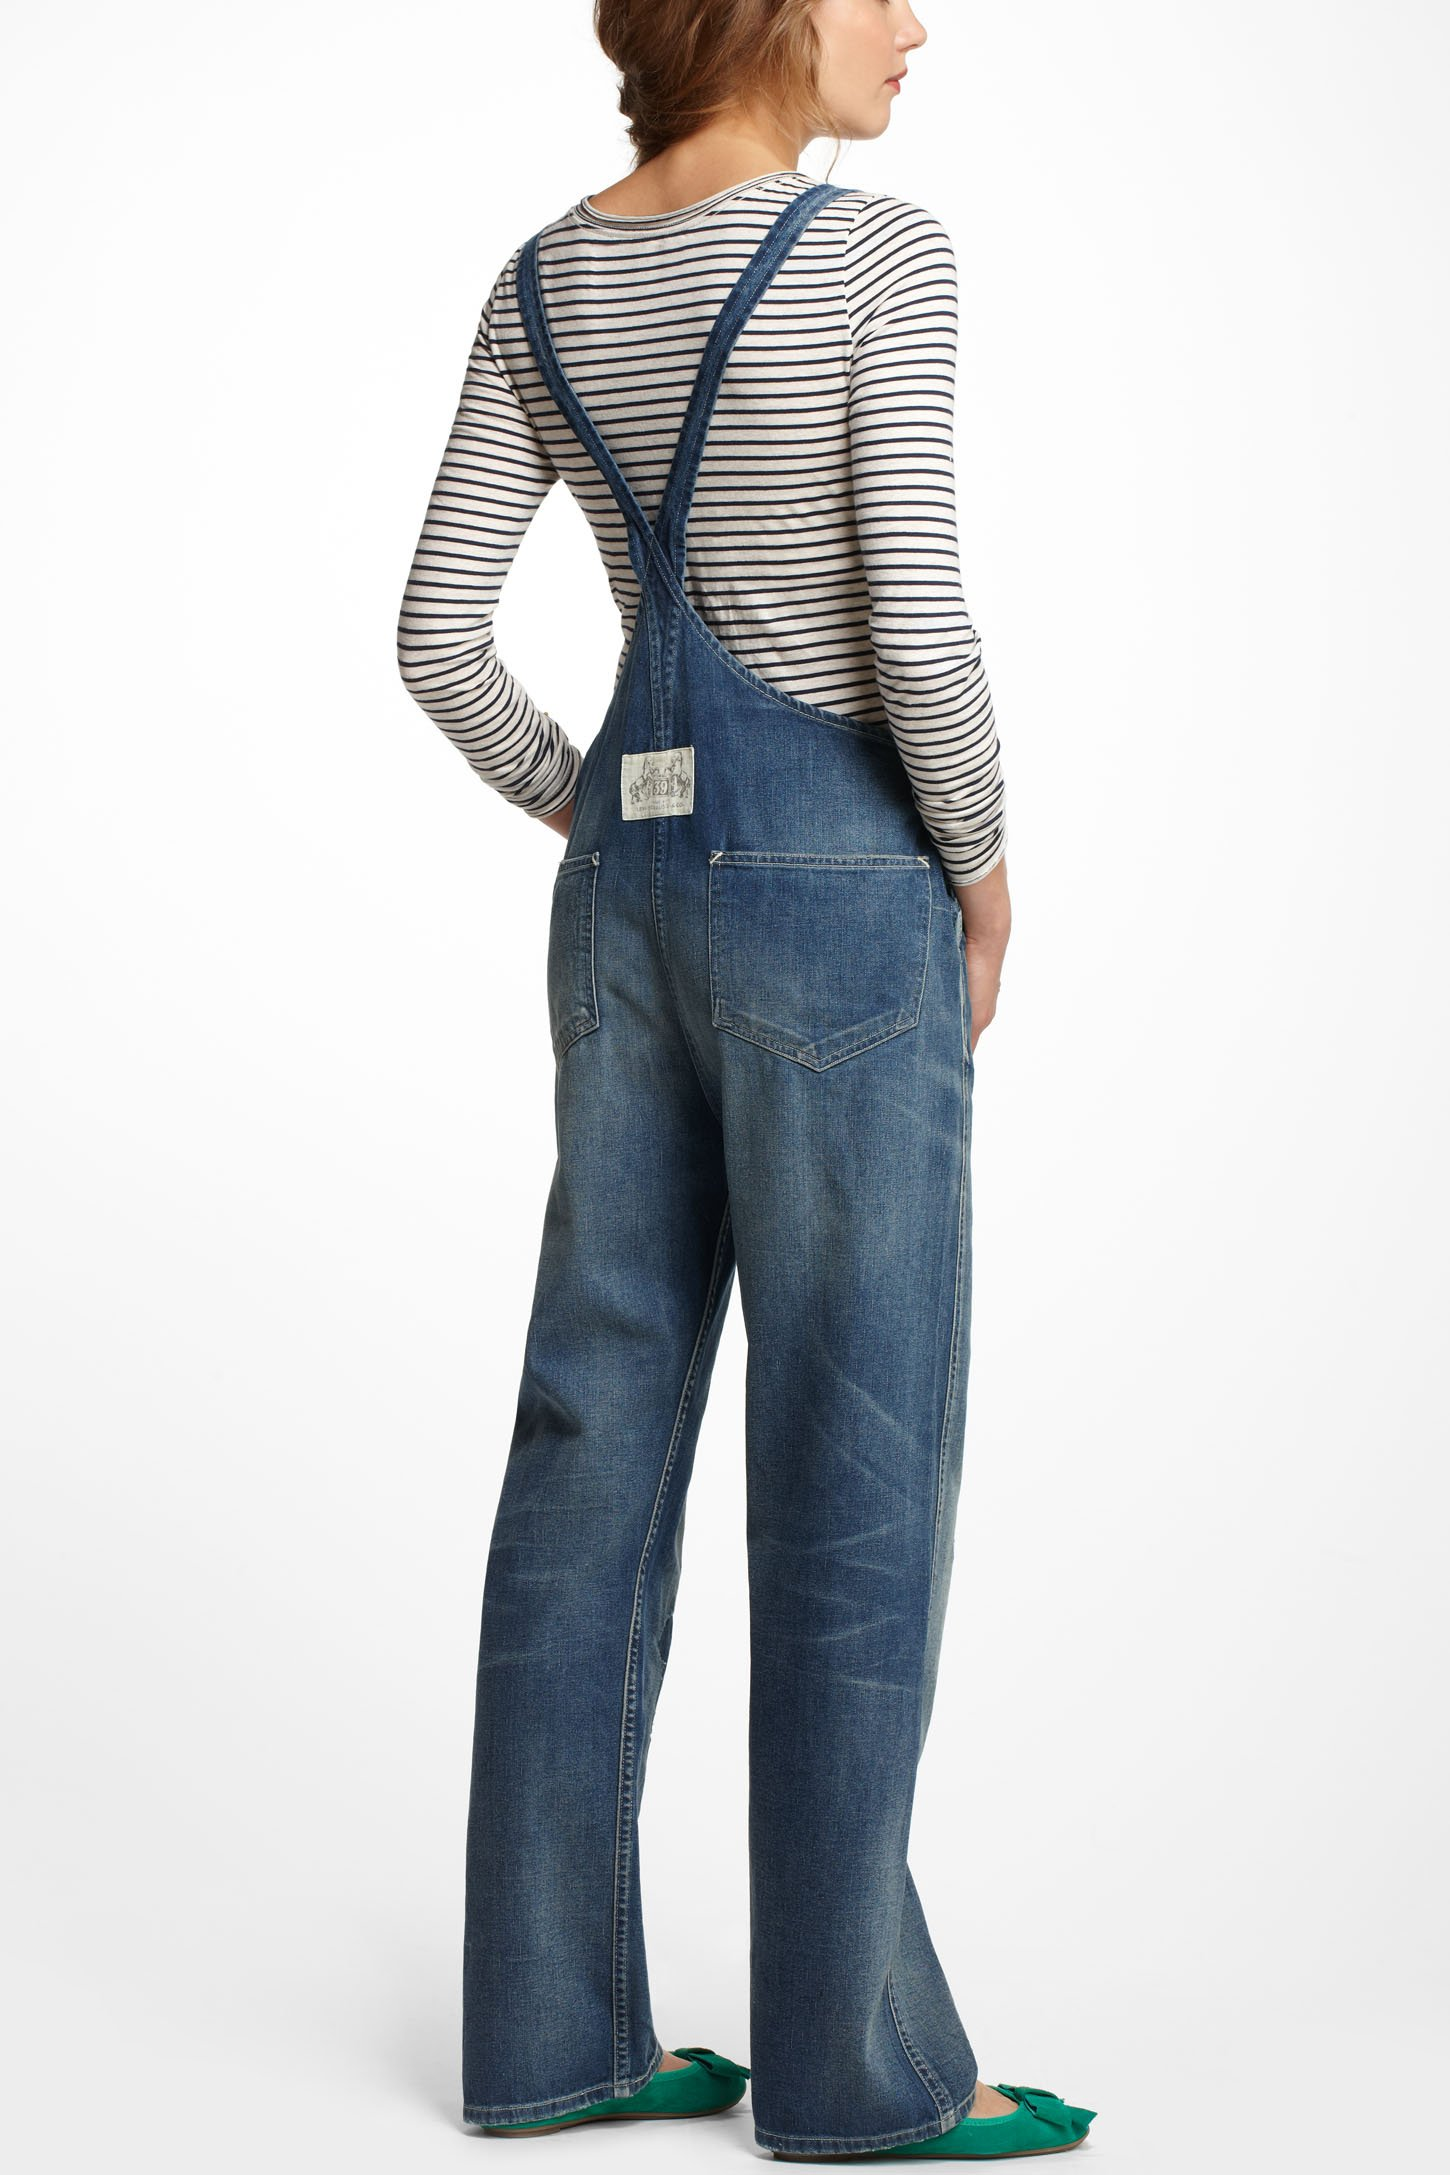 Overalls Are Making A Comeback As The Latest Fashion Trend: Anthropologie Levis Vintage Clothing Bib Amp Brace